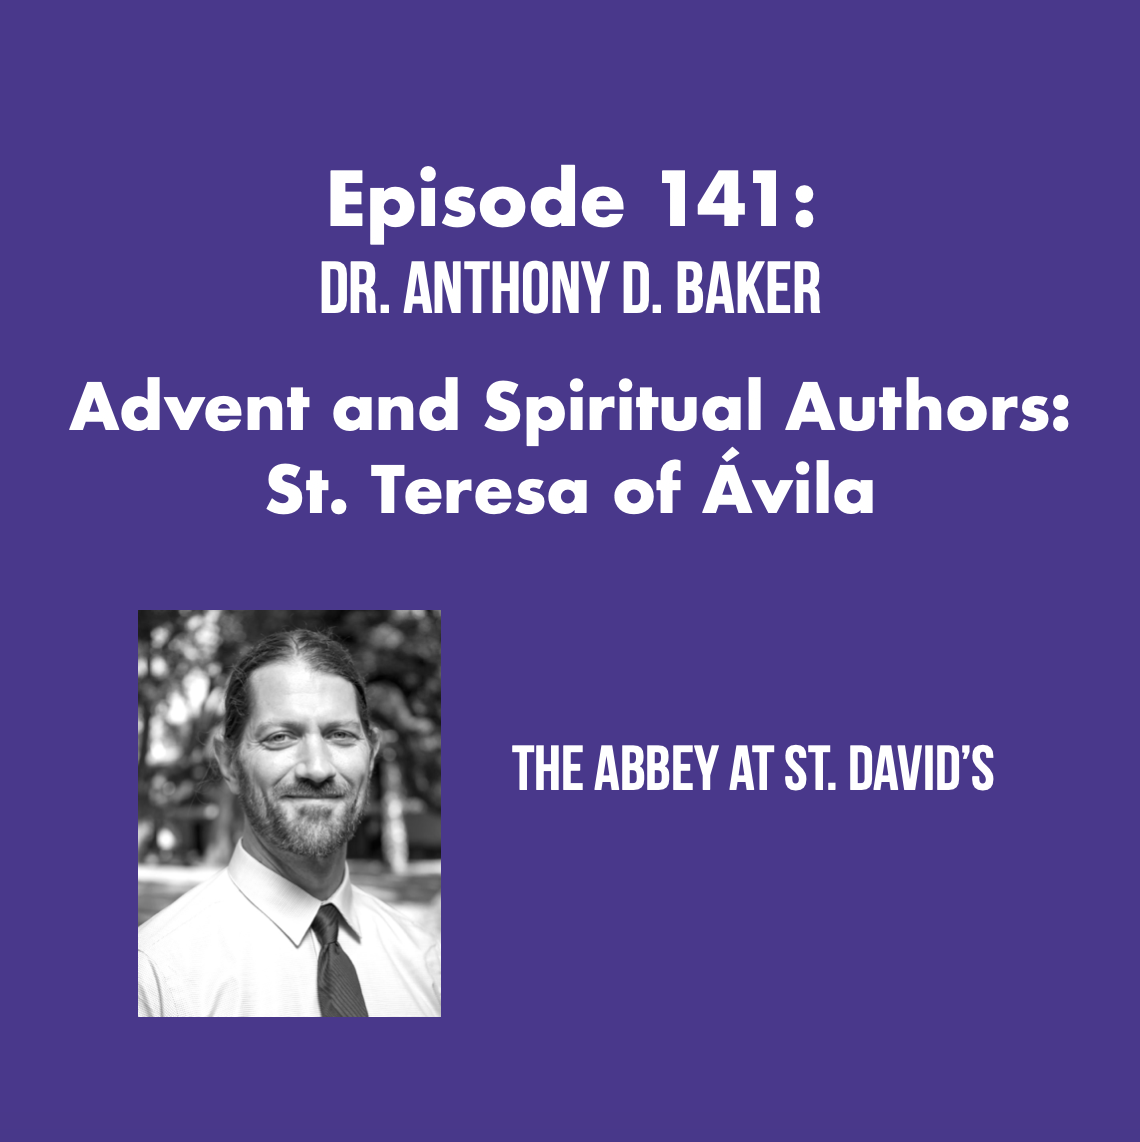 Episode 141: Advent and Spiritual Authors: St. Teresa of Avila with Dr. Anthony Baker